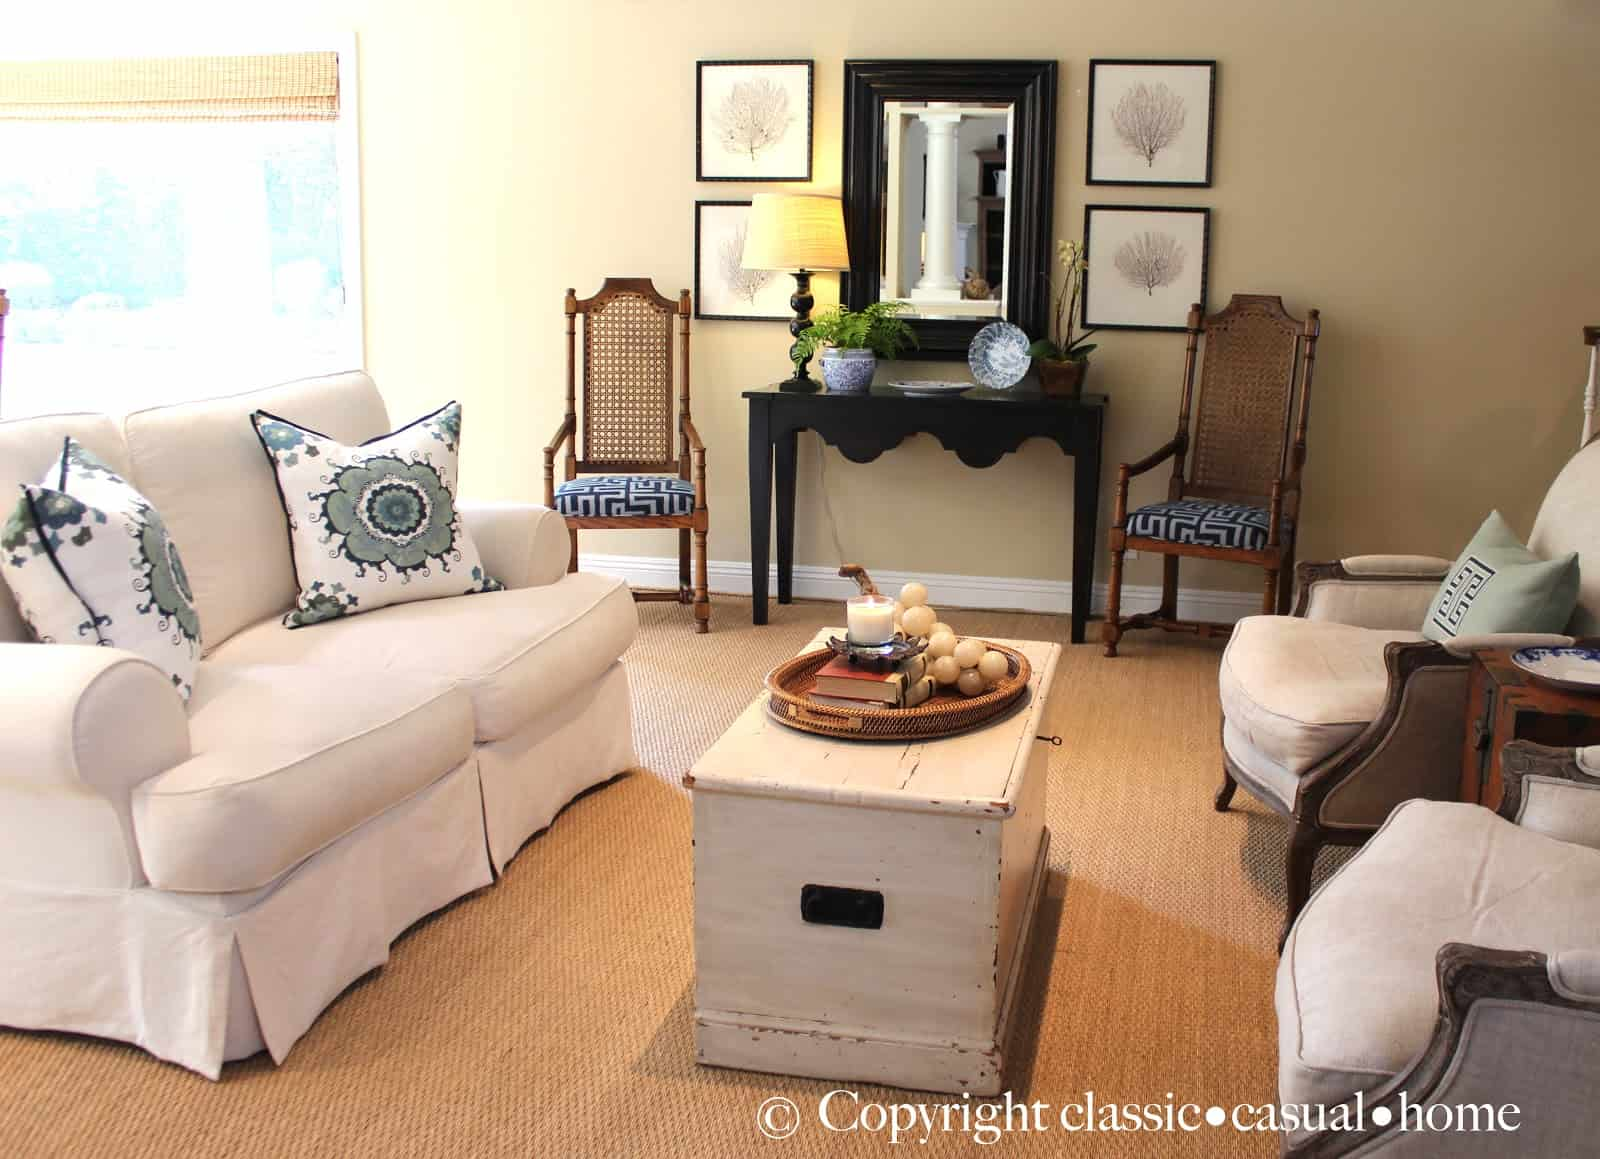 How to Update Your Traditional Décor & How to Update Your Traditional Décor - Classic Casual Home